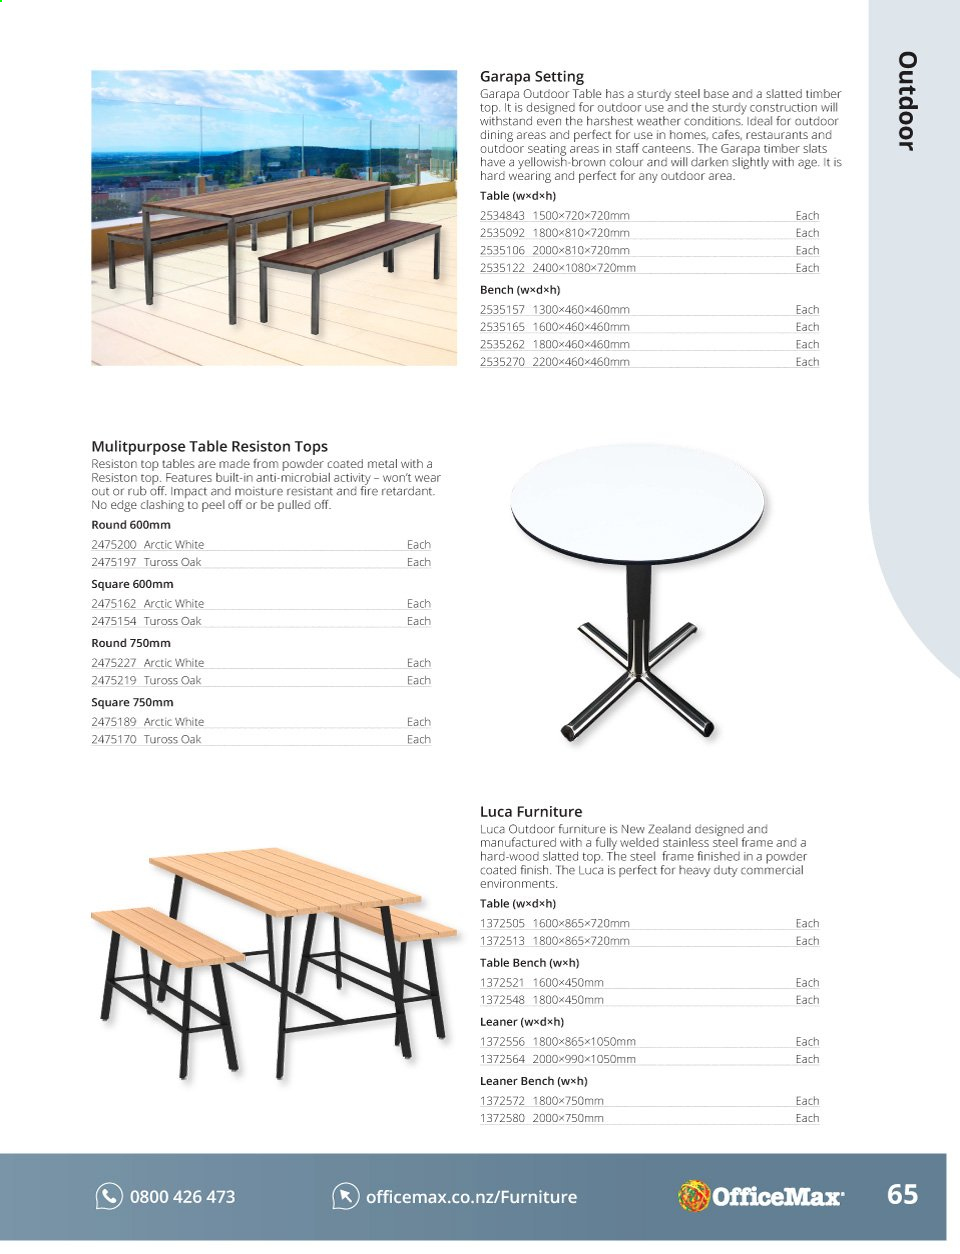 OfficeMax mailer - Sales products - bench, frame, furniture, moisture, table, powder, outdoor furniture. Page 67.